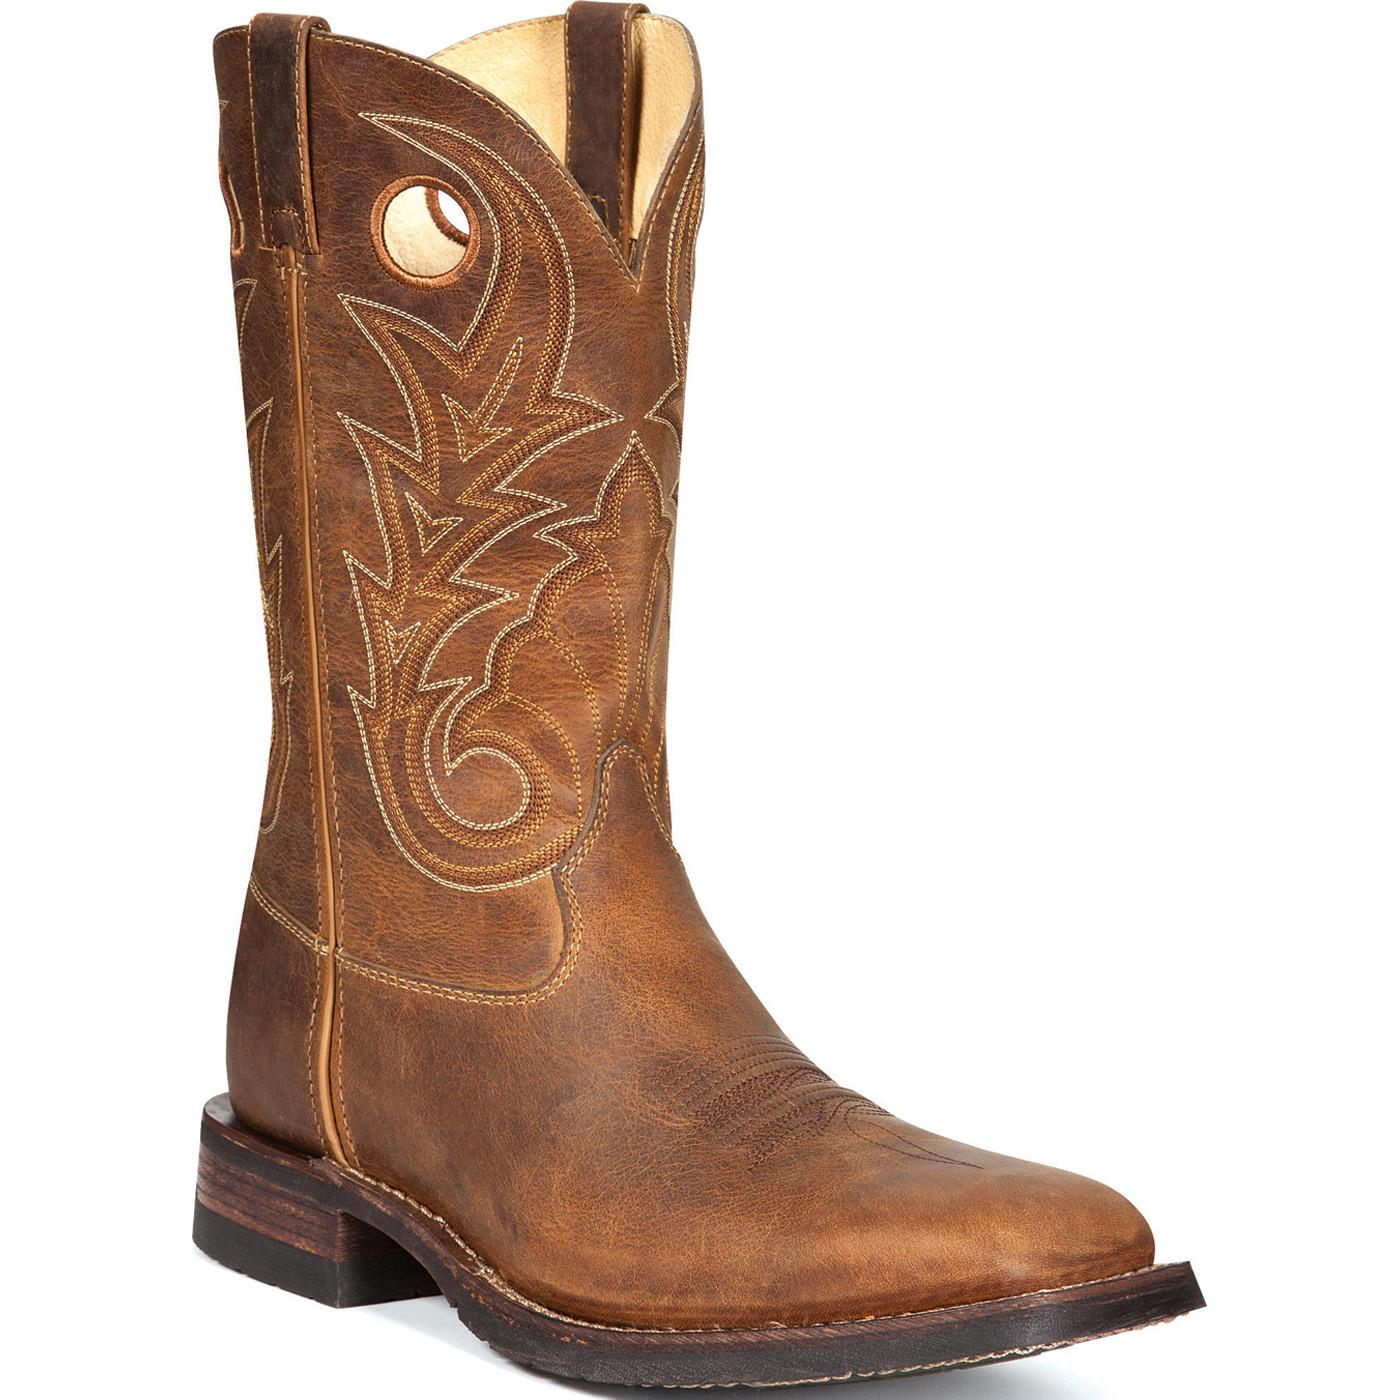 HandHewn Western Boot - Rocky Western Boots - Stock #4982